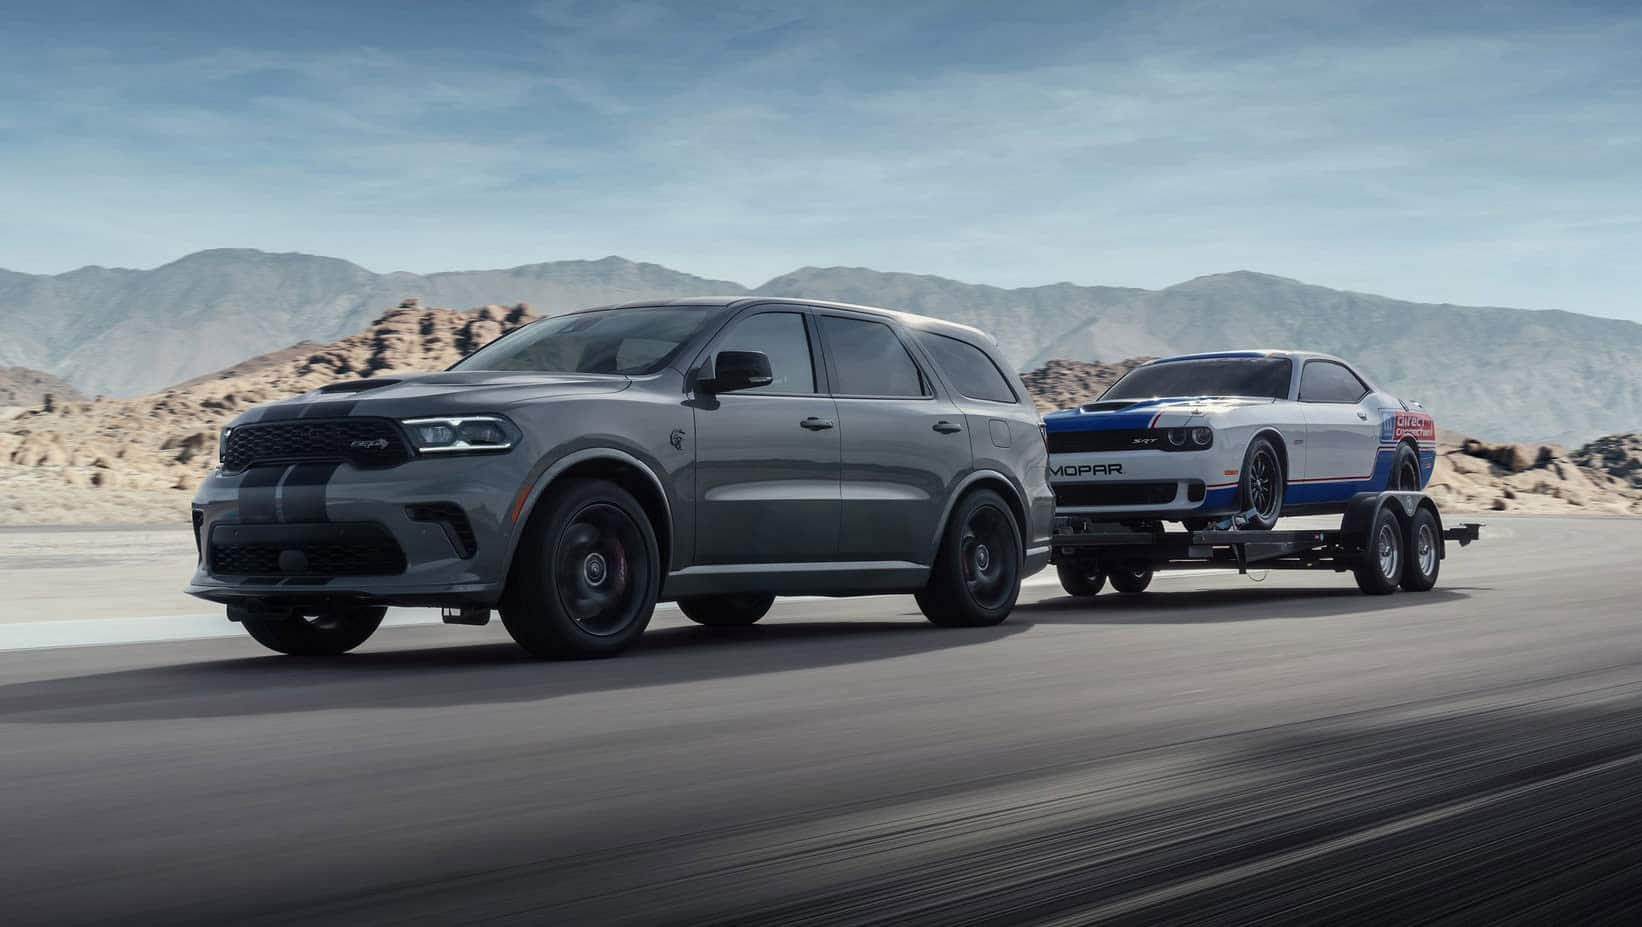 2021 dodge durango srt hellcat: the world's most powerful